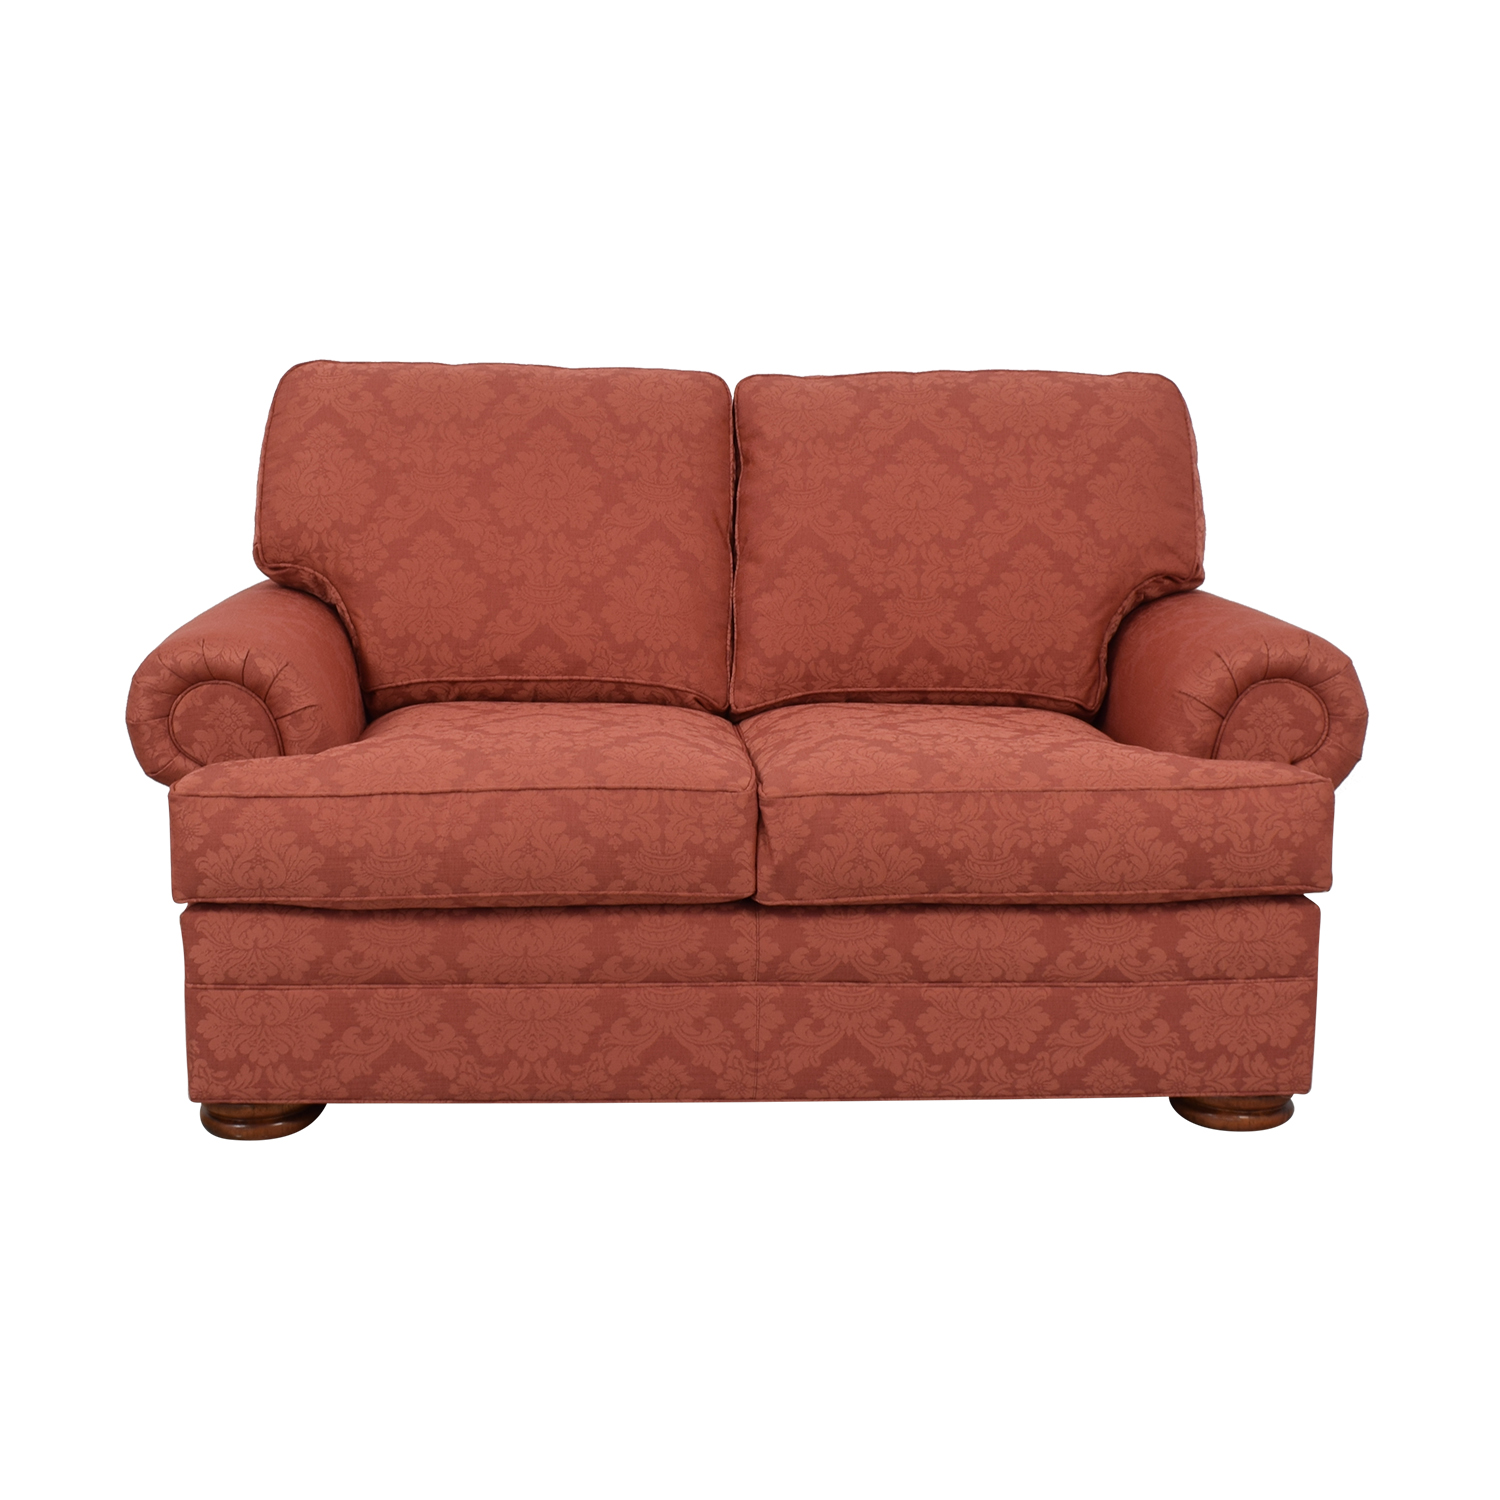 Thomasville Thomasville Custom Loveseat dimensions